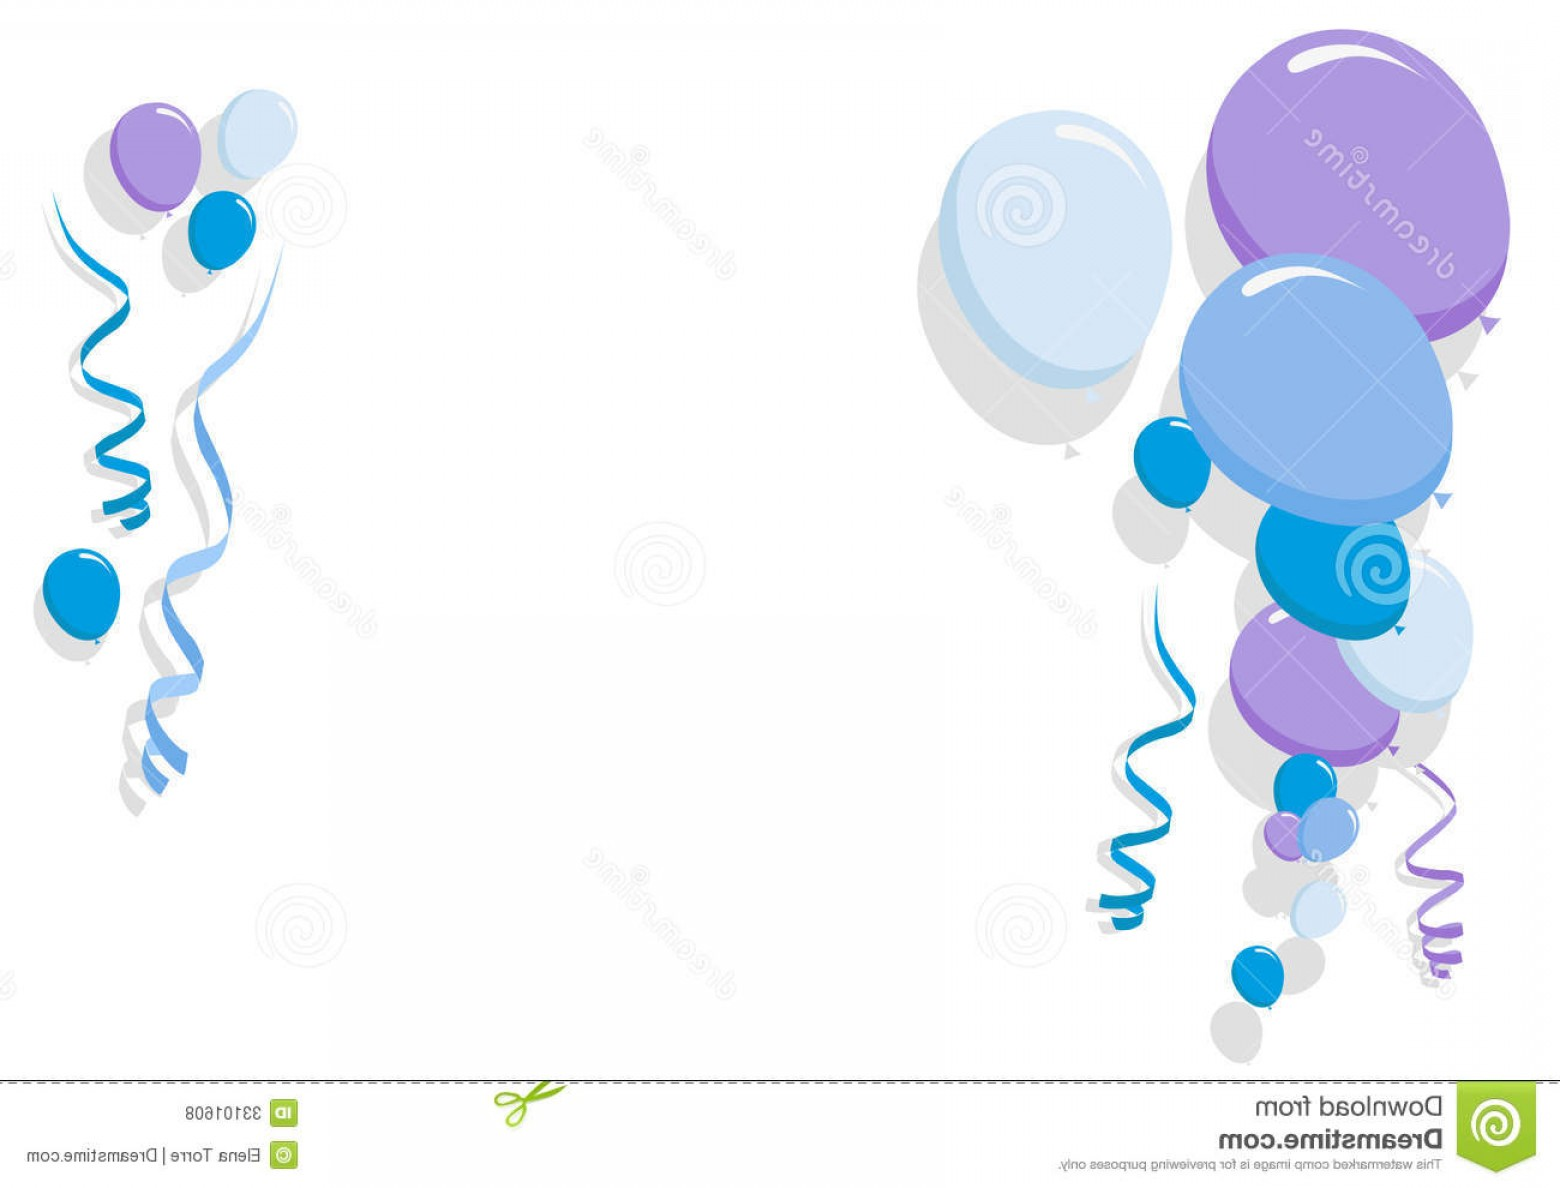 Birthday Card Vector Frame Designs: Royalty Free Stock Photos Blue Balloons Border Boy Frame Illustration Birthday Cards Party Card Image